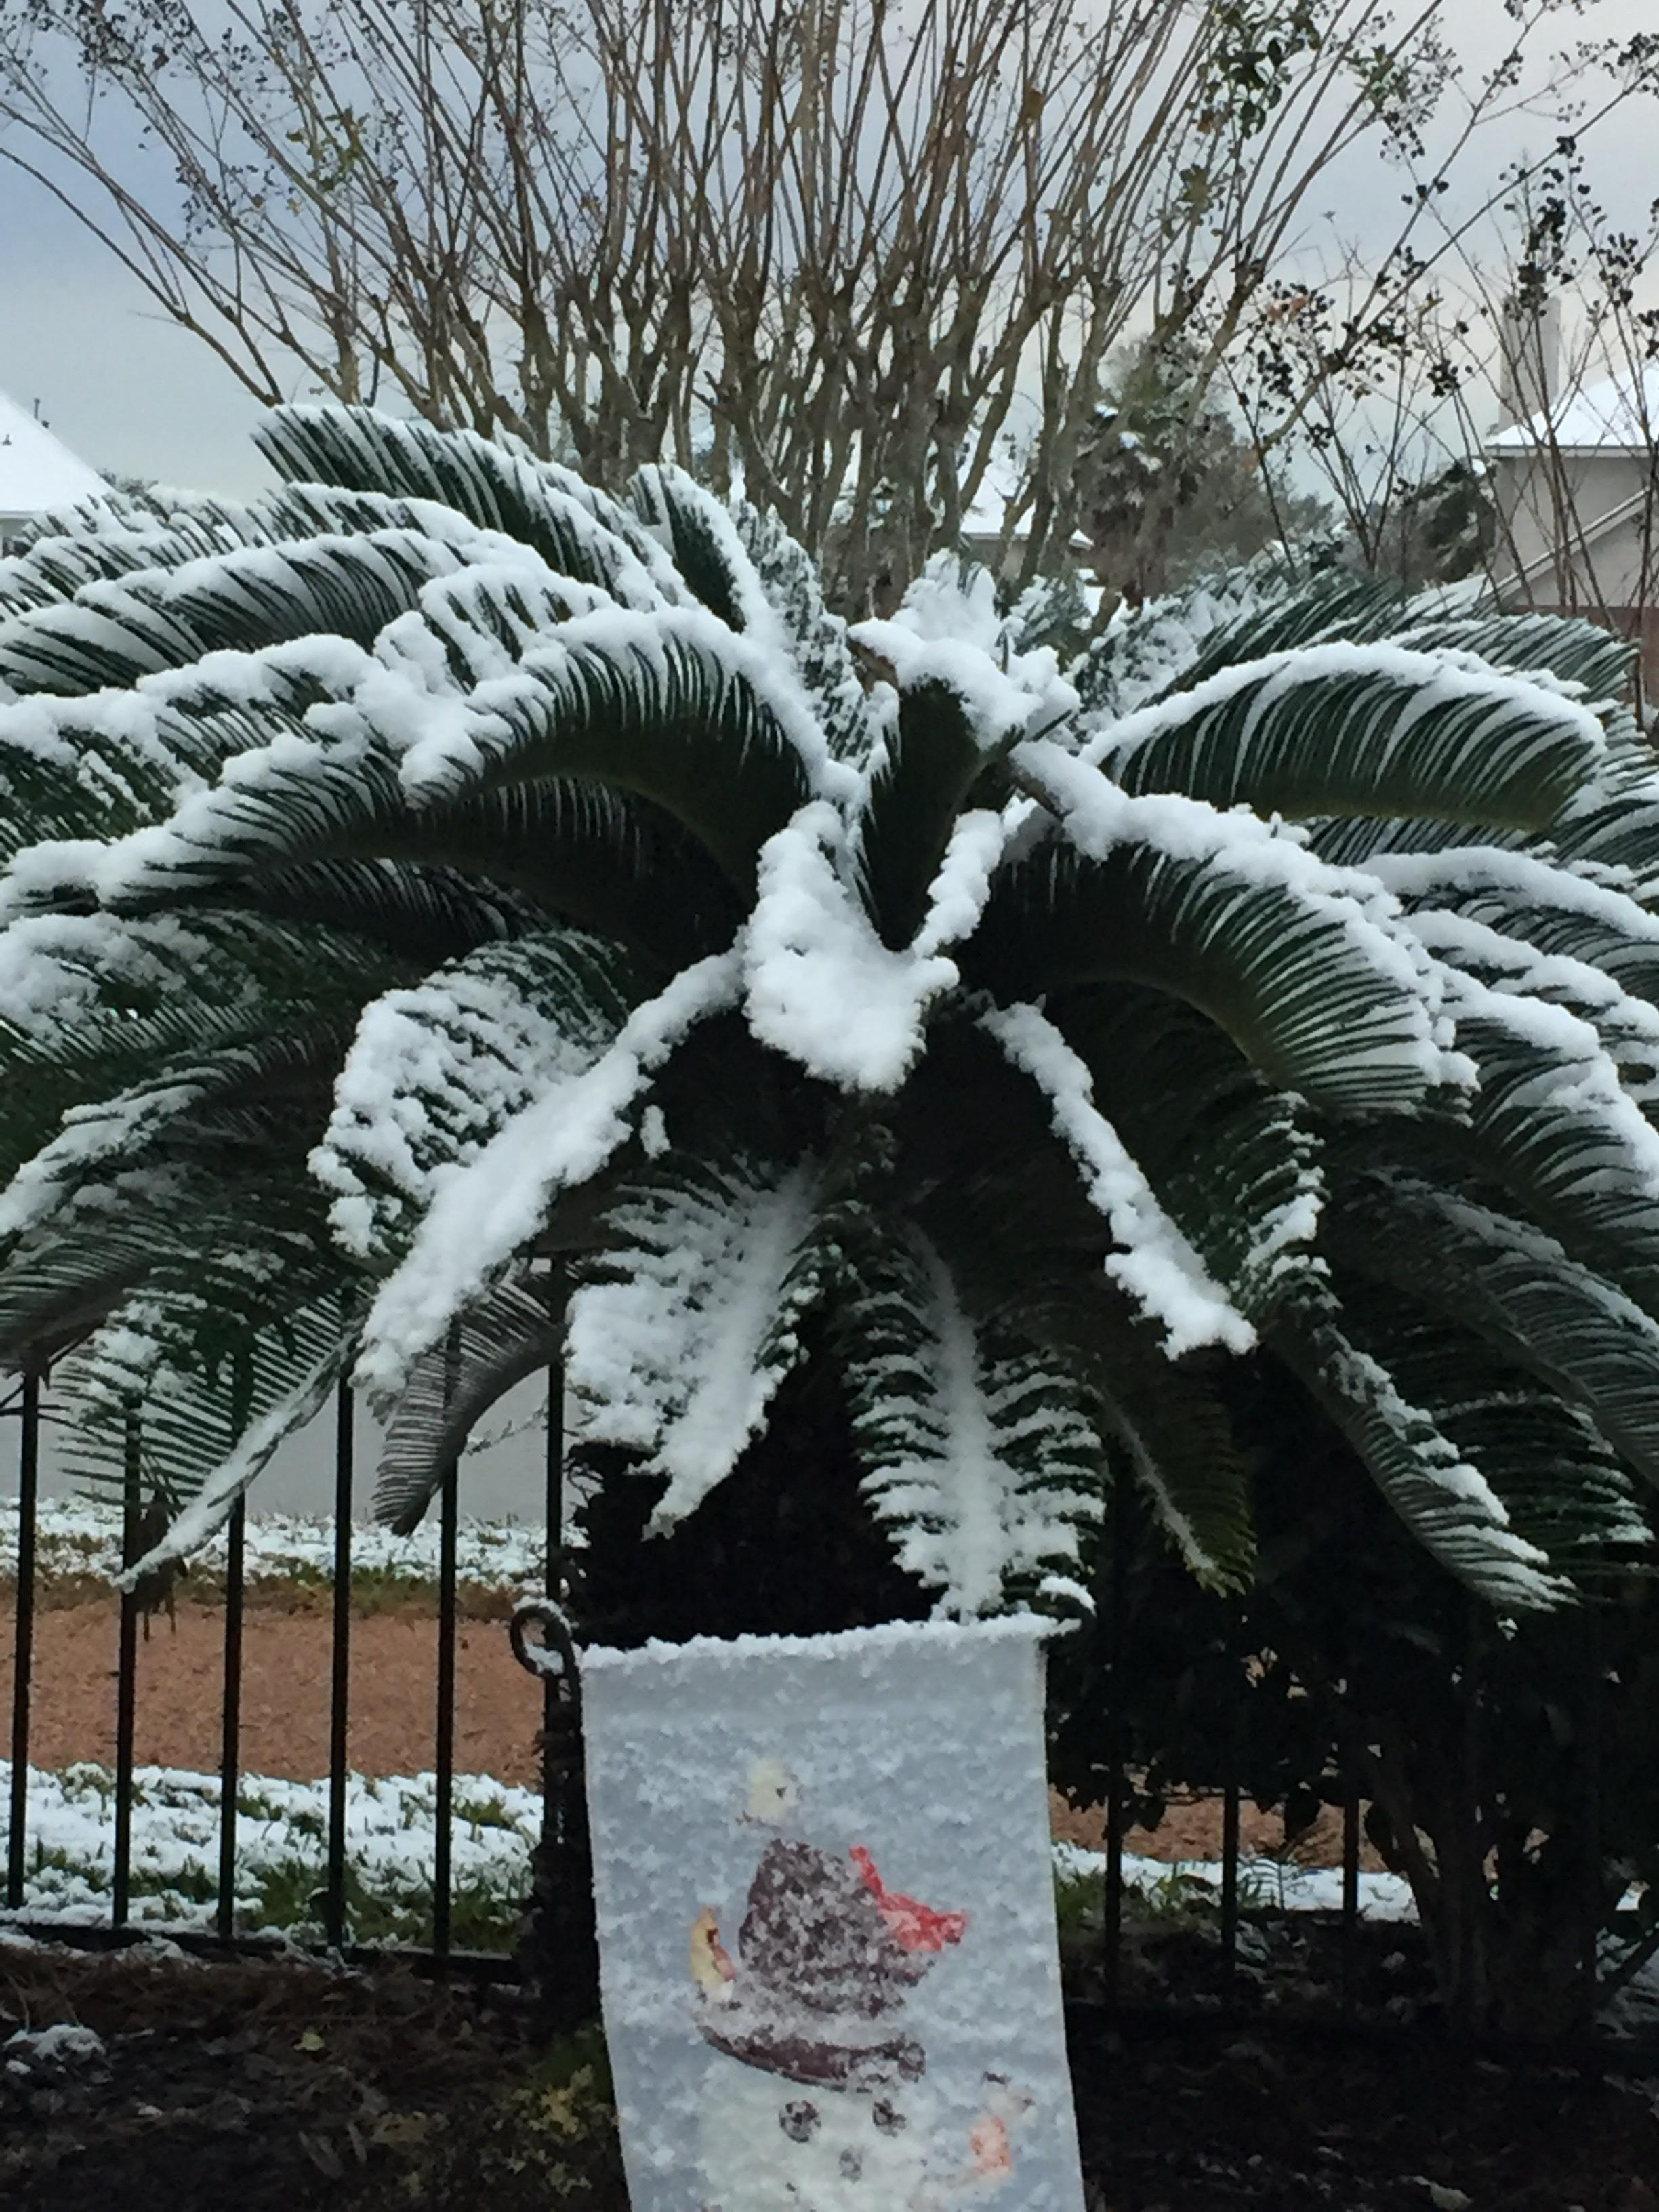 <div class='meta'><div class='origin-logo' data-origin='none'></div><span class='caption-text' data-credit=''>Snow in Friendswood</span></div>